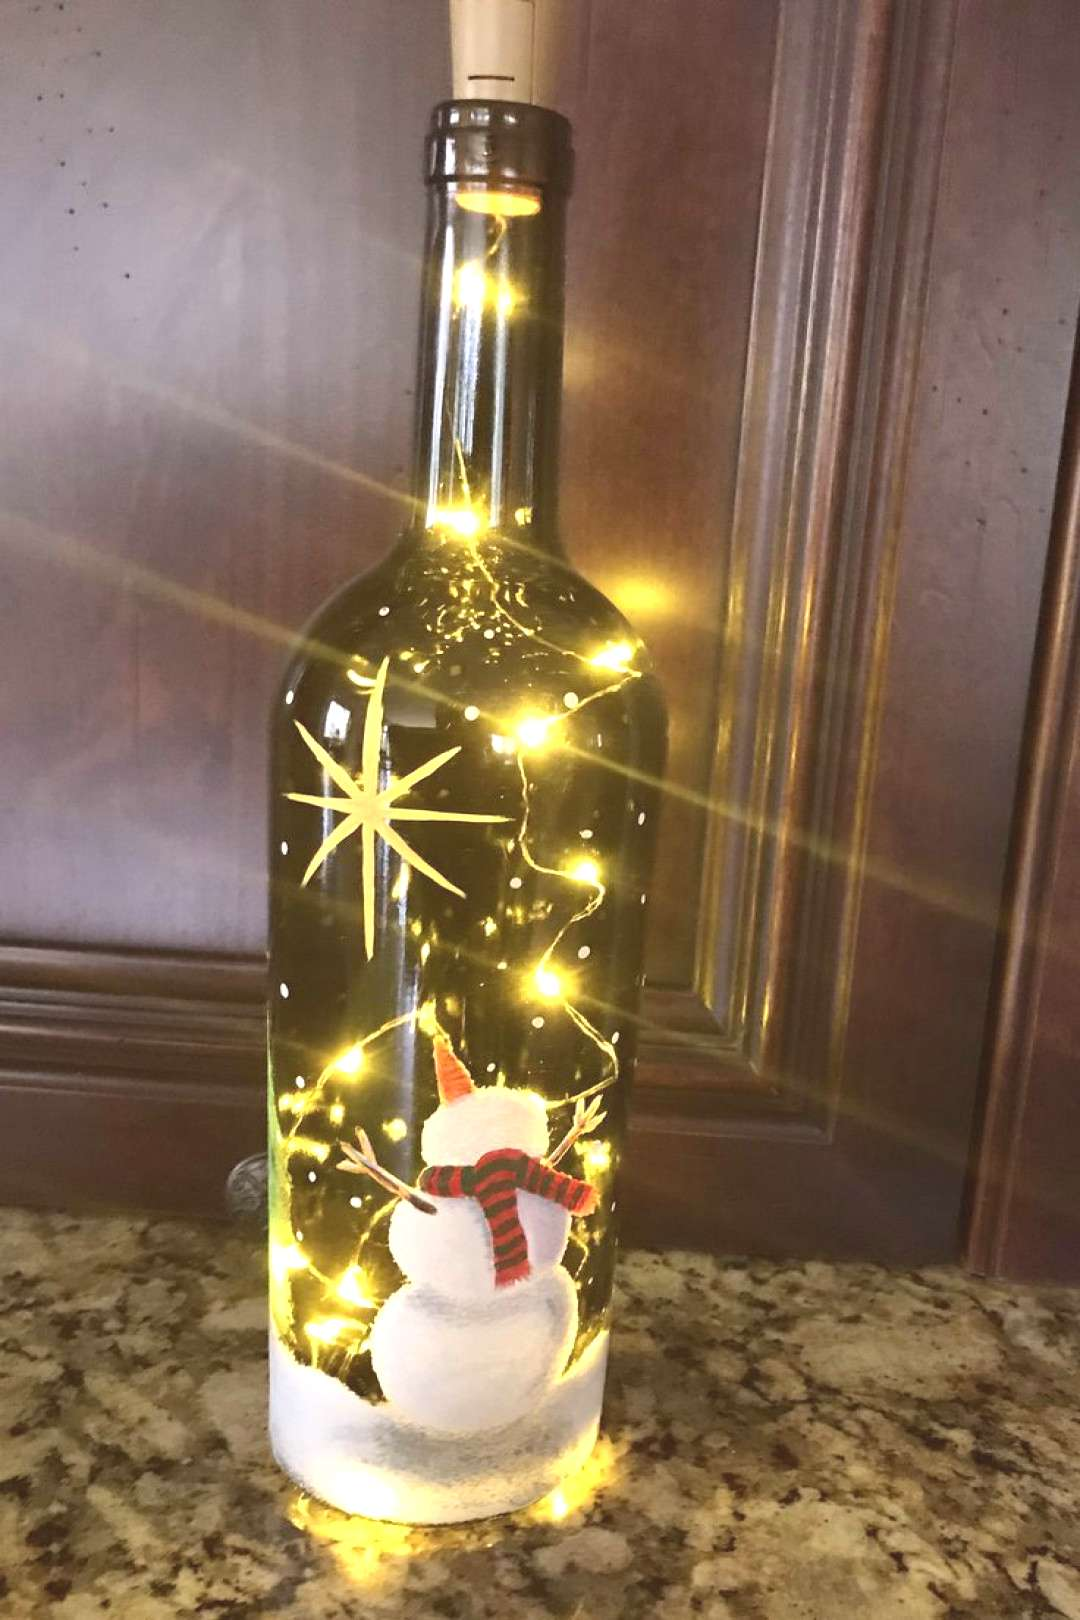 Snowman painted on bottle with fairy lights inside...first bottle I've painted... -